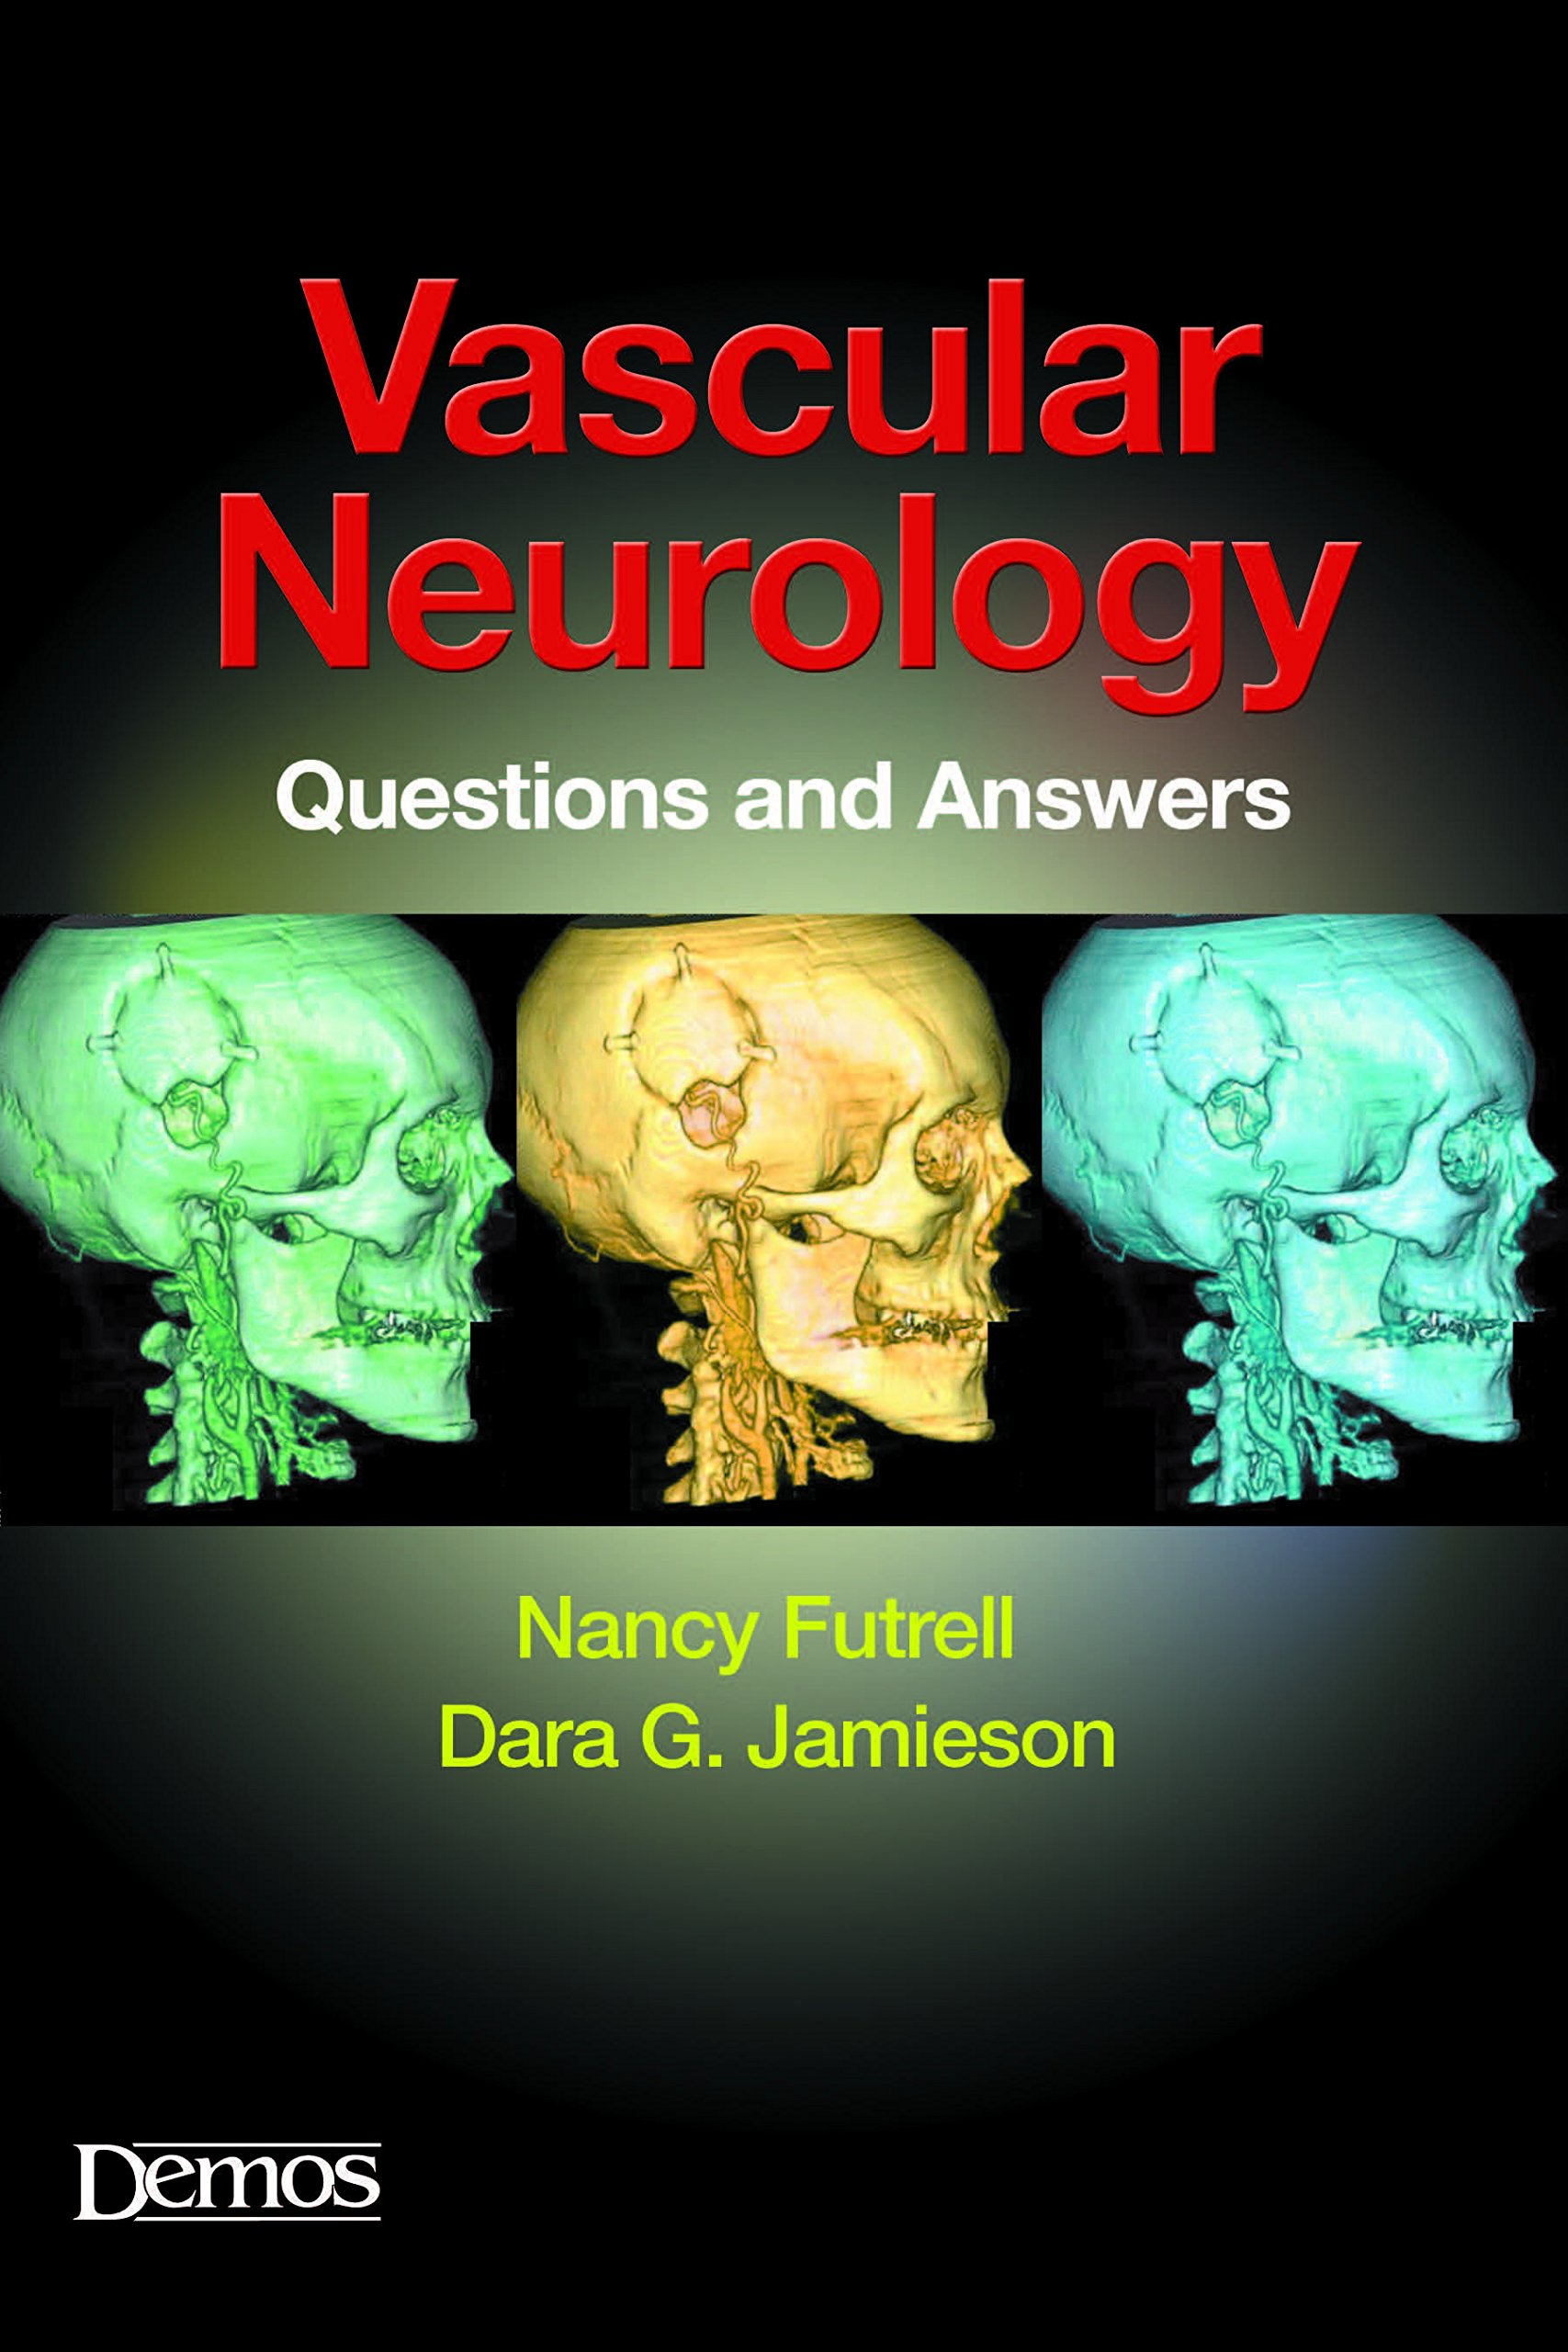 Vascular Neurology: Questions and Answers: Nancy Futrell